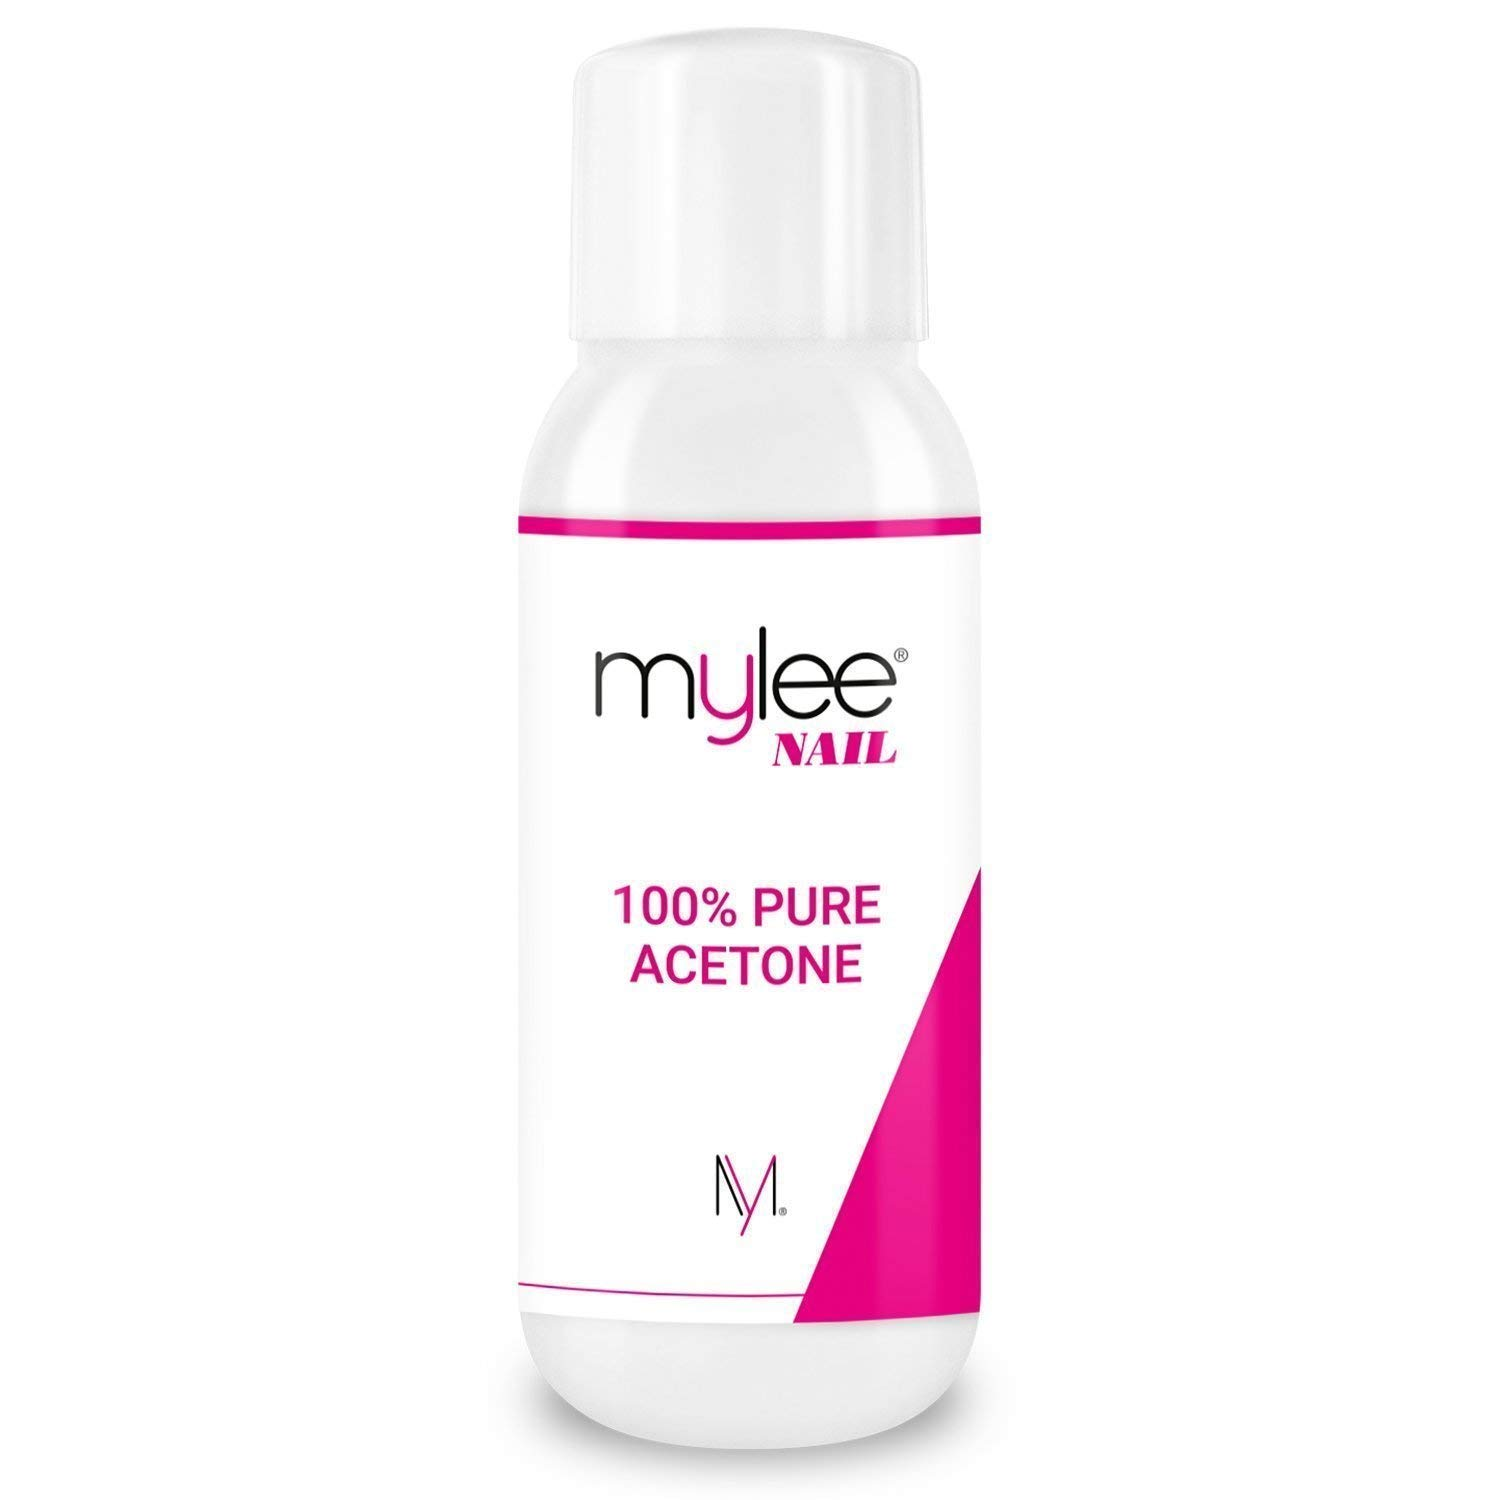 Mylee 100% Pure Acetone High Quality Nail Polish Remover for UV/LED Gel Soak Off (300ml)